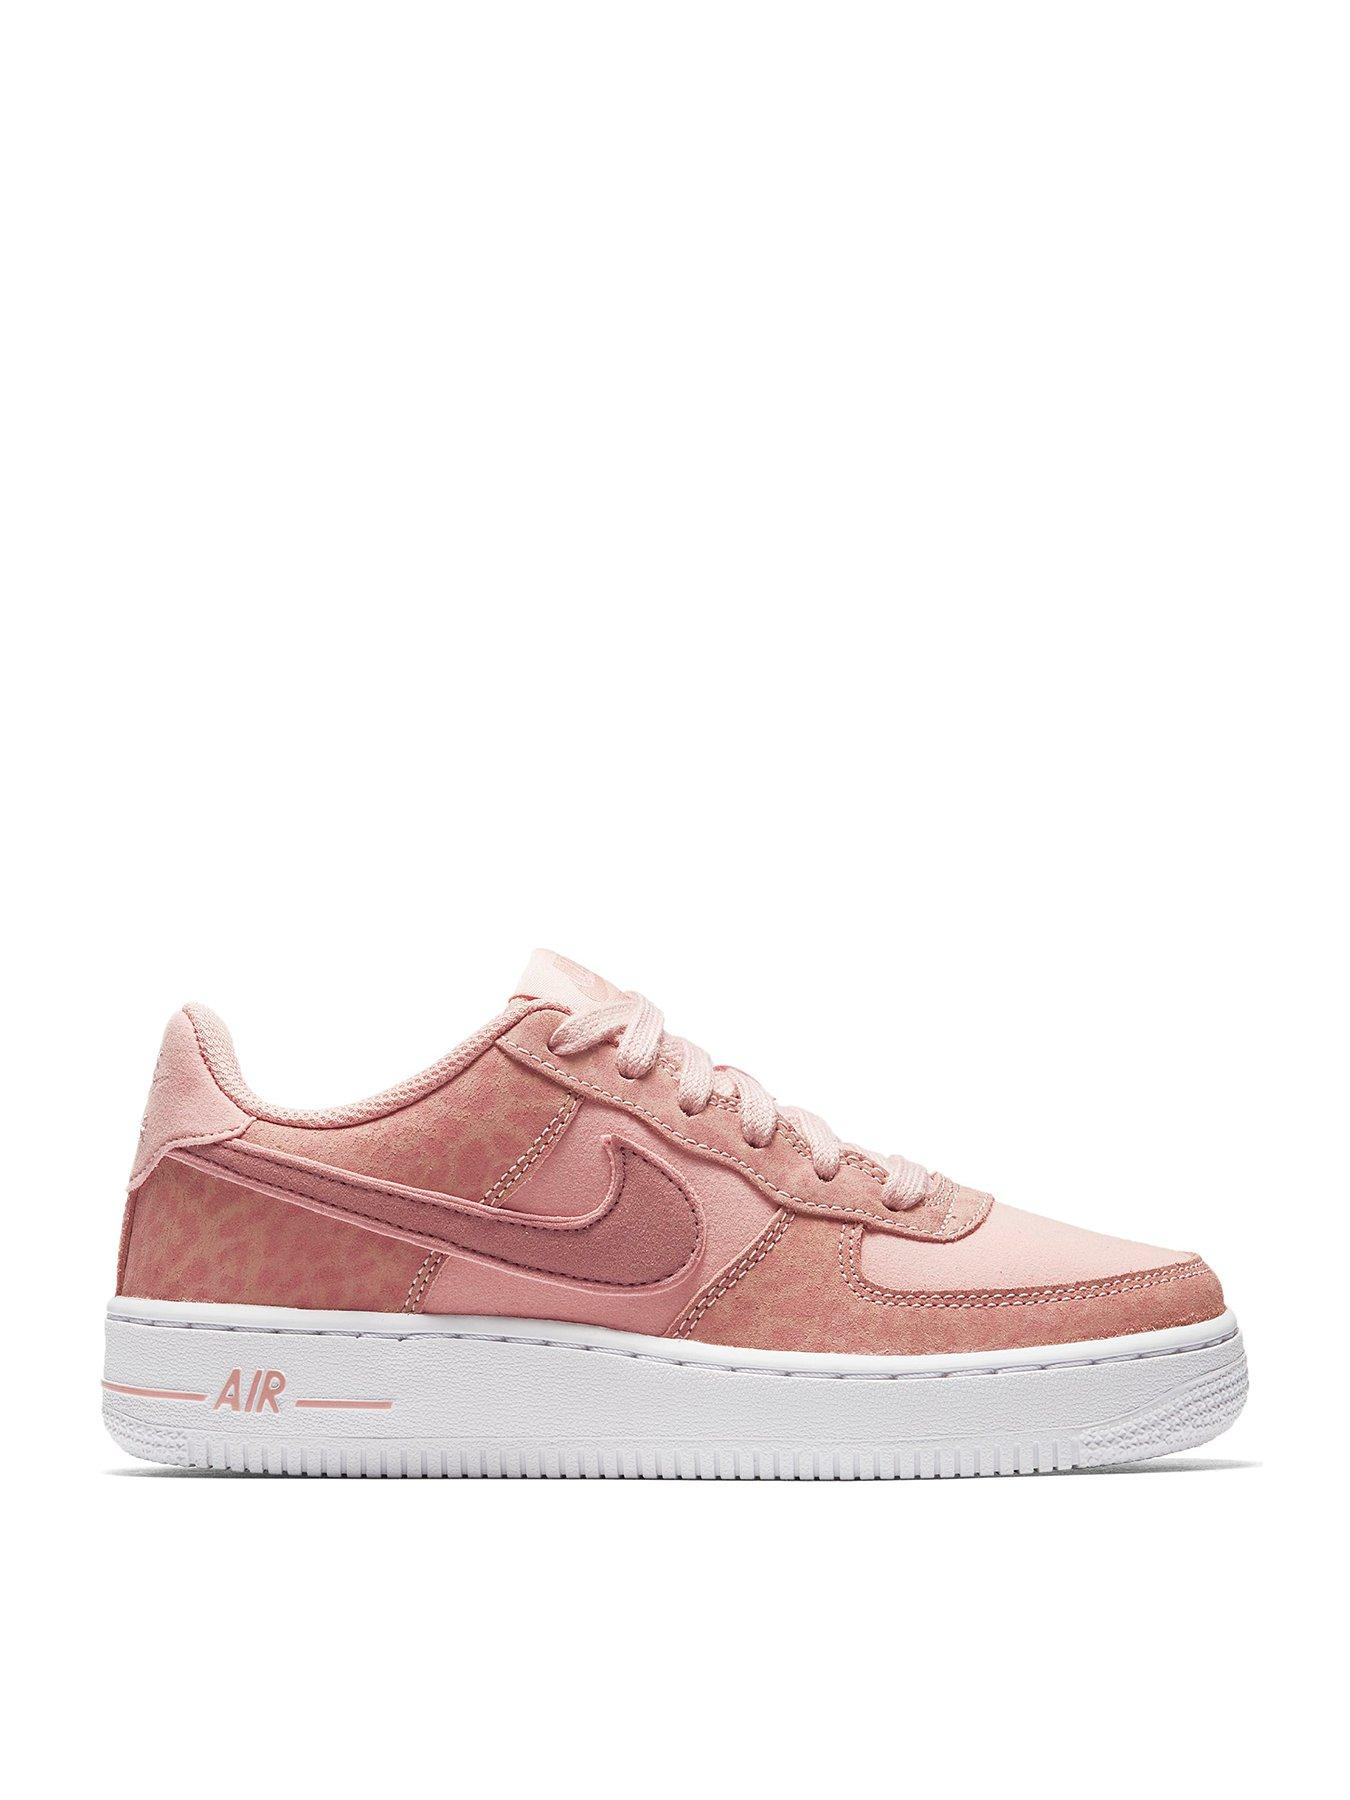 Nike Air Force 1 LV8 Childrens Trainer